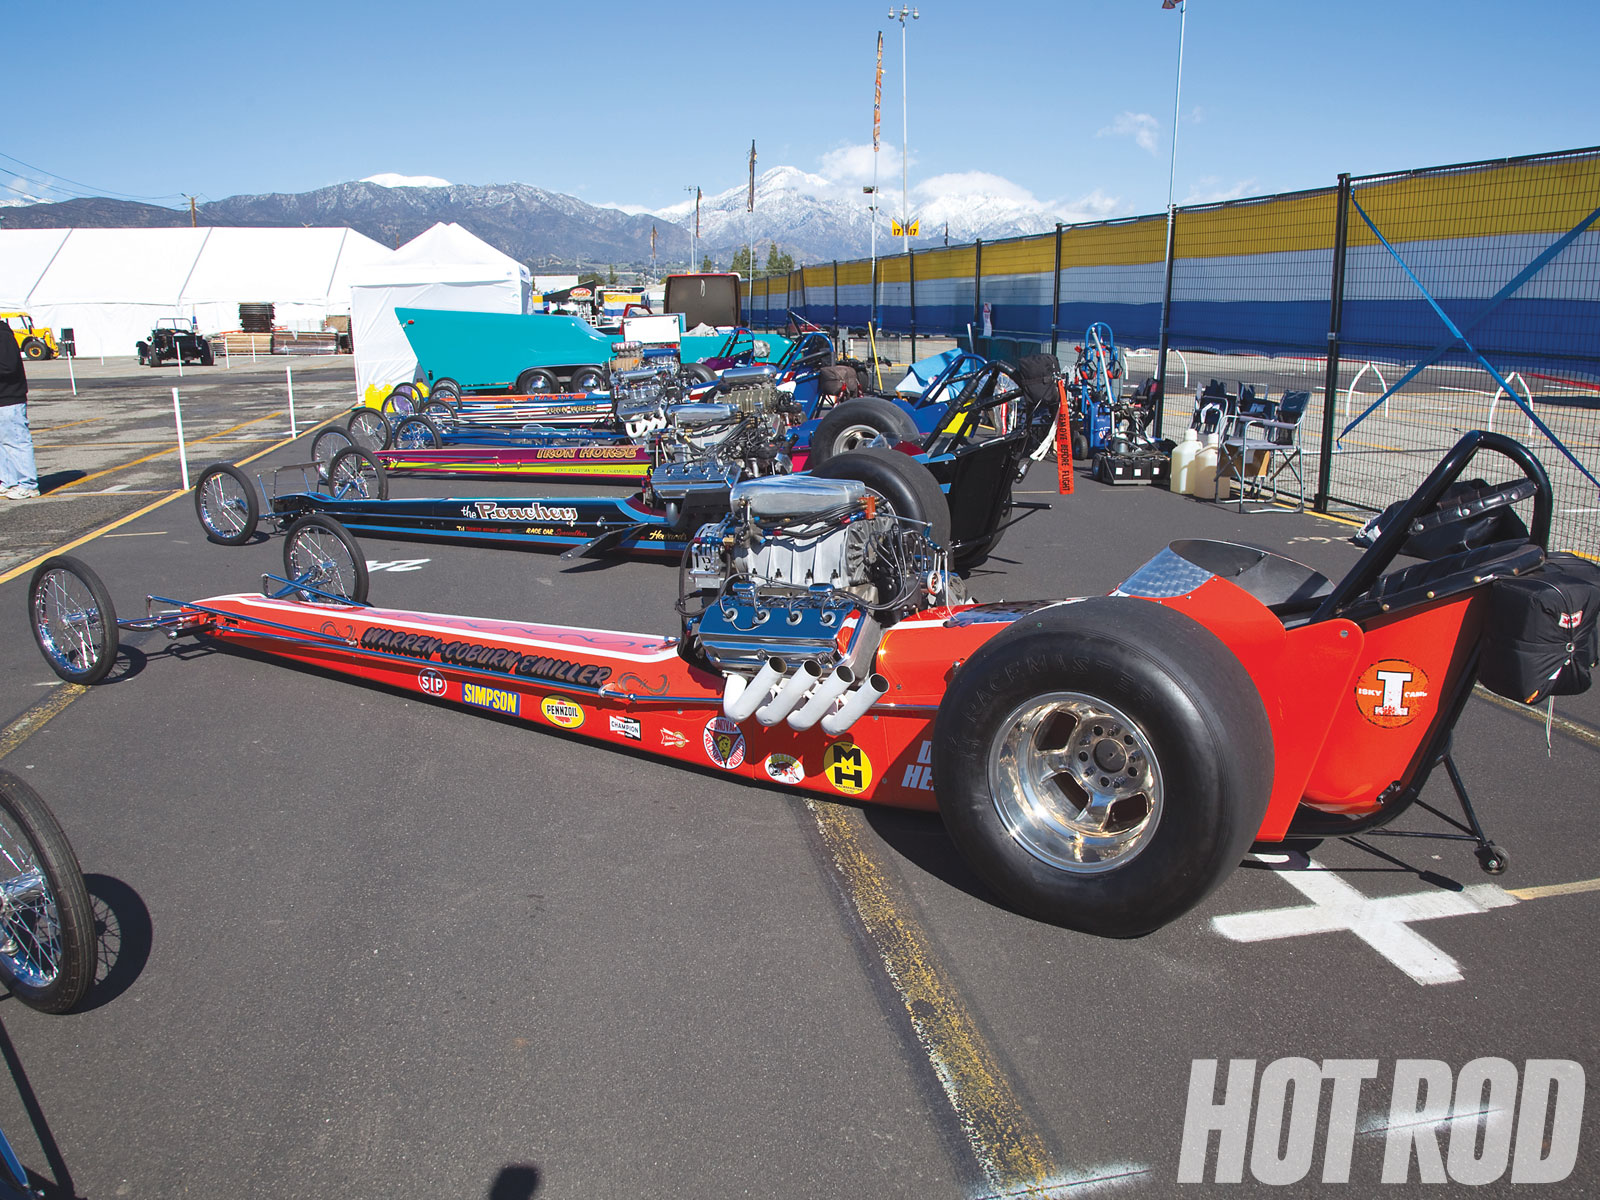 Dragster cars photo - 1